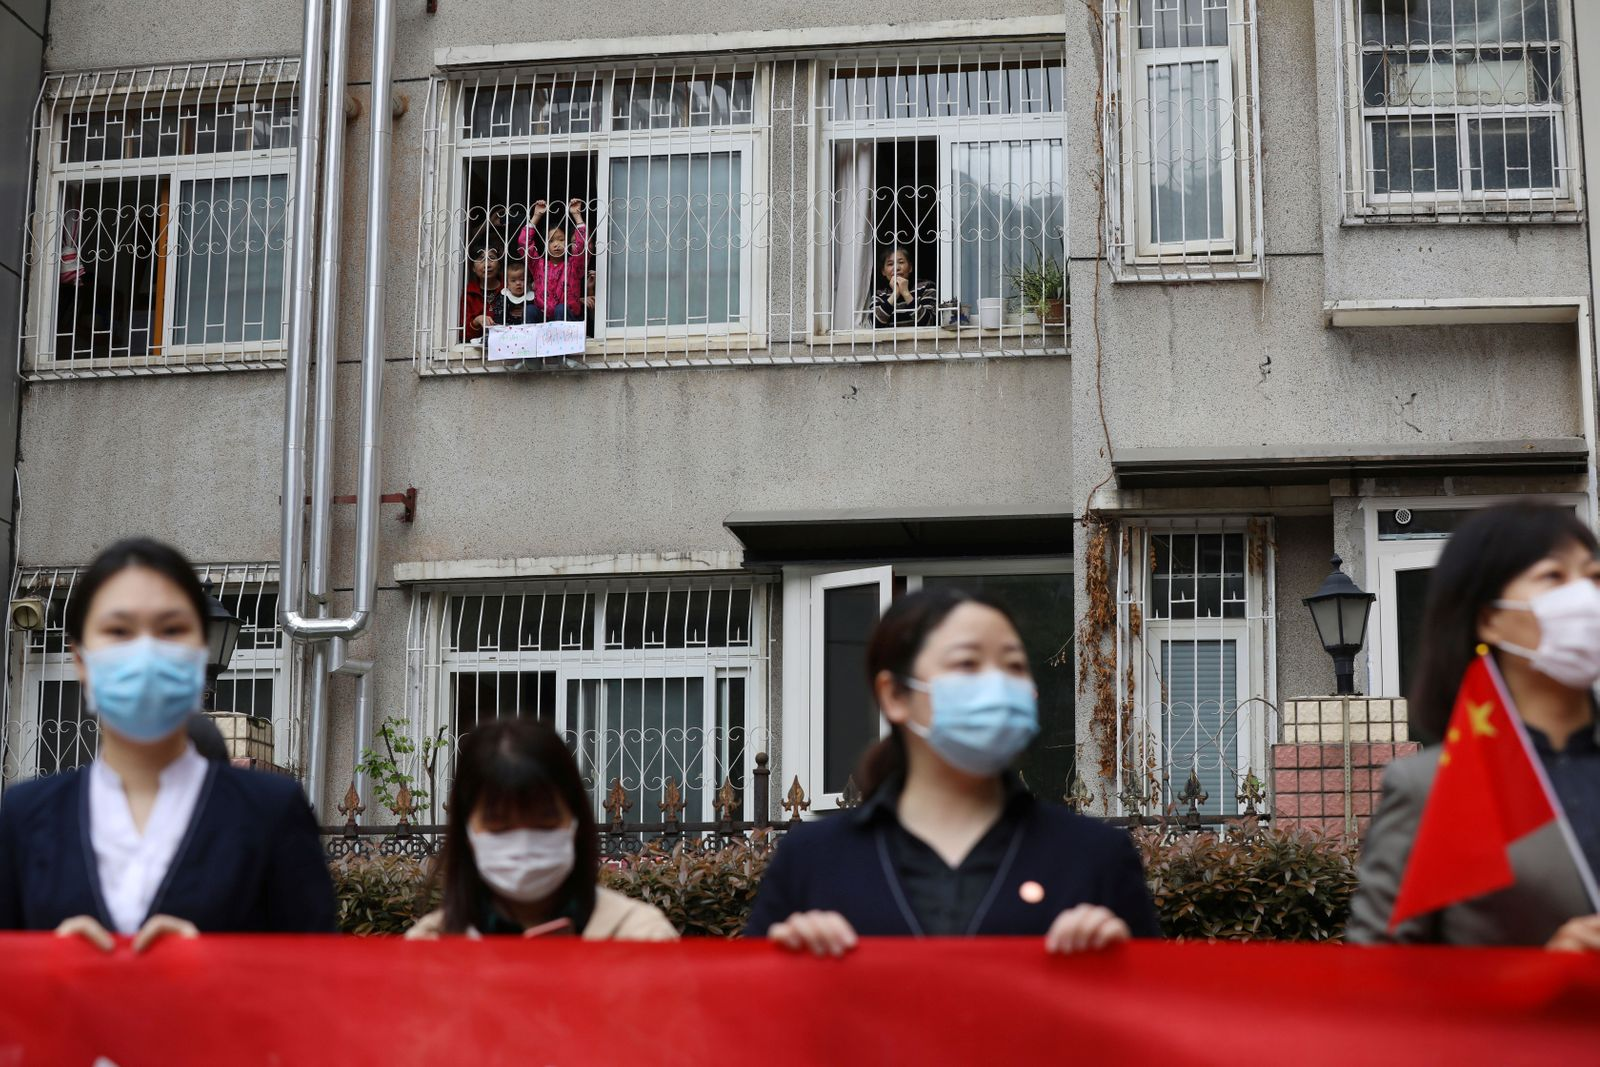 Residents bid farewell from their homes to a medical team from Guizhou province who is leaving Wuhan, following the novel coronavirus disease (COVID-19) outbreak, in Hubei